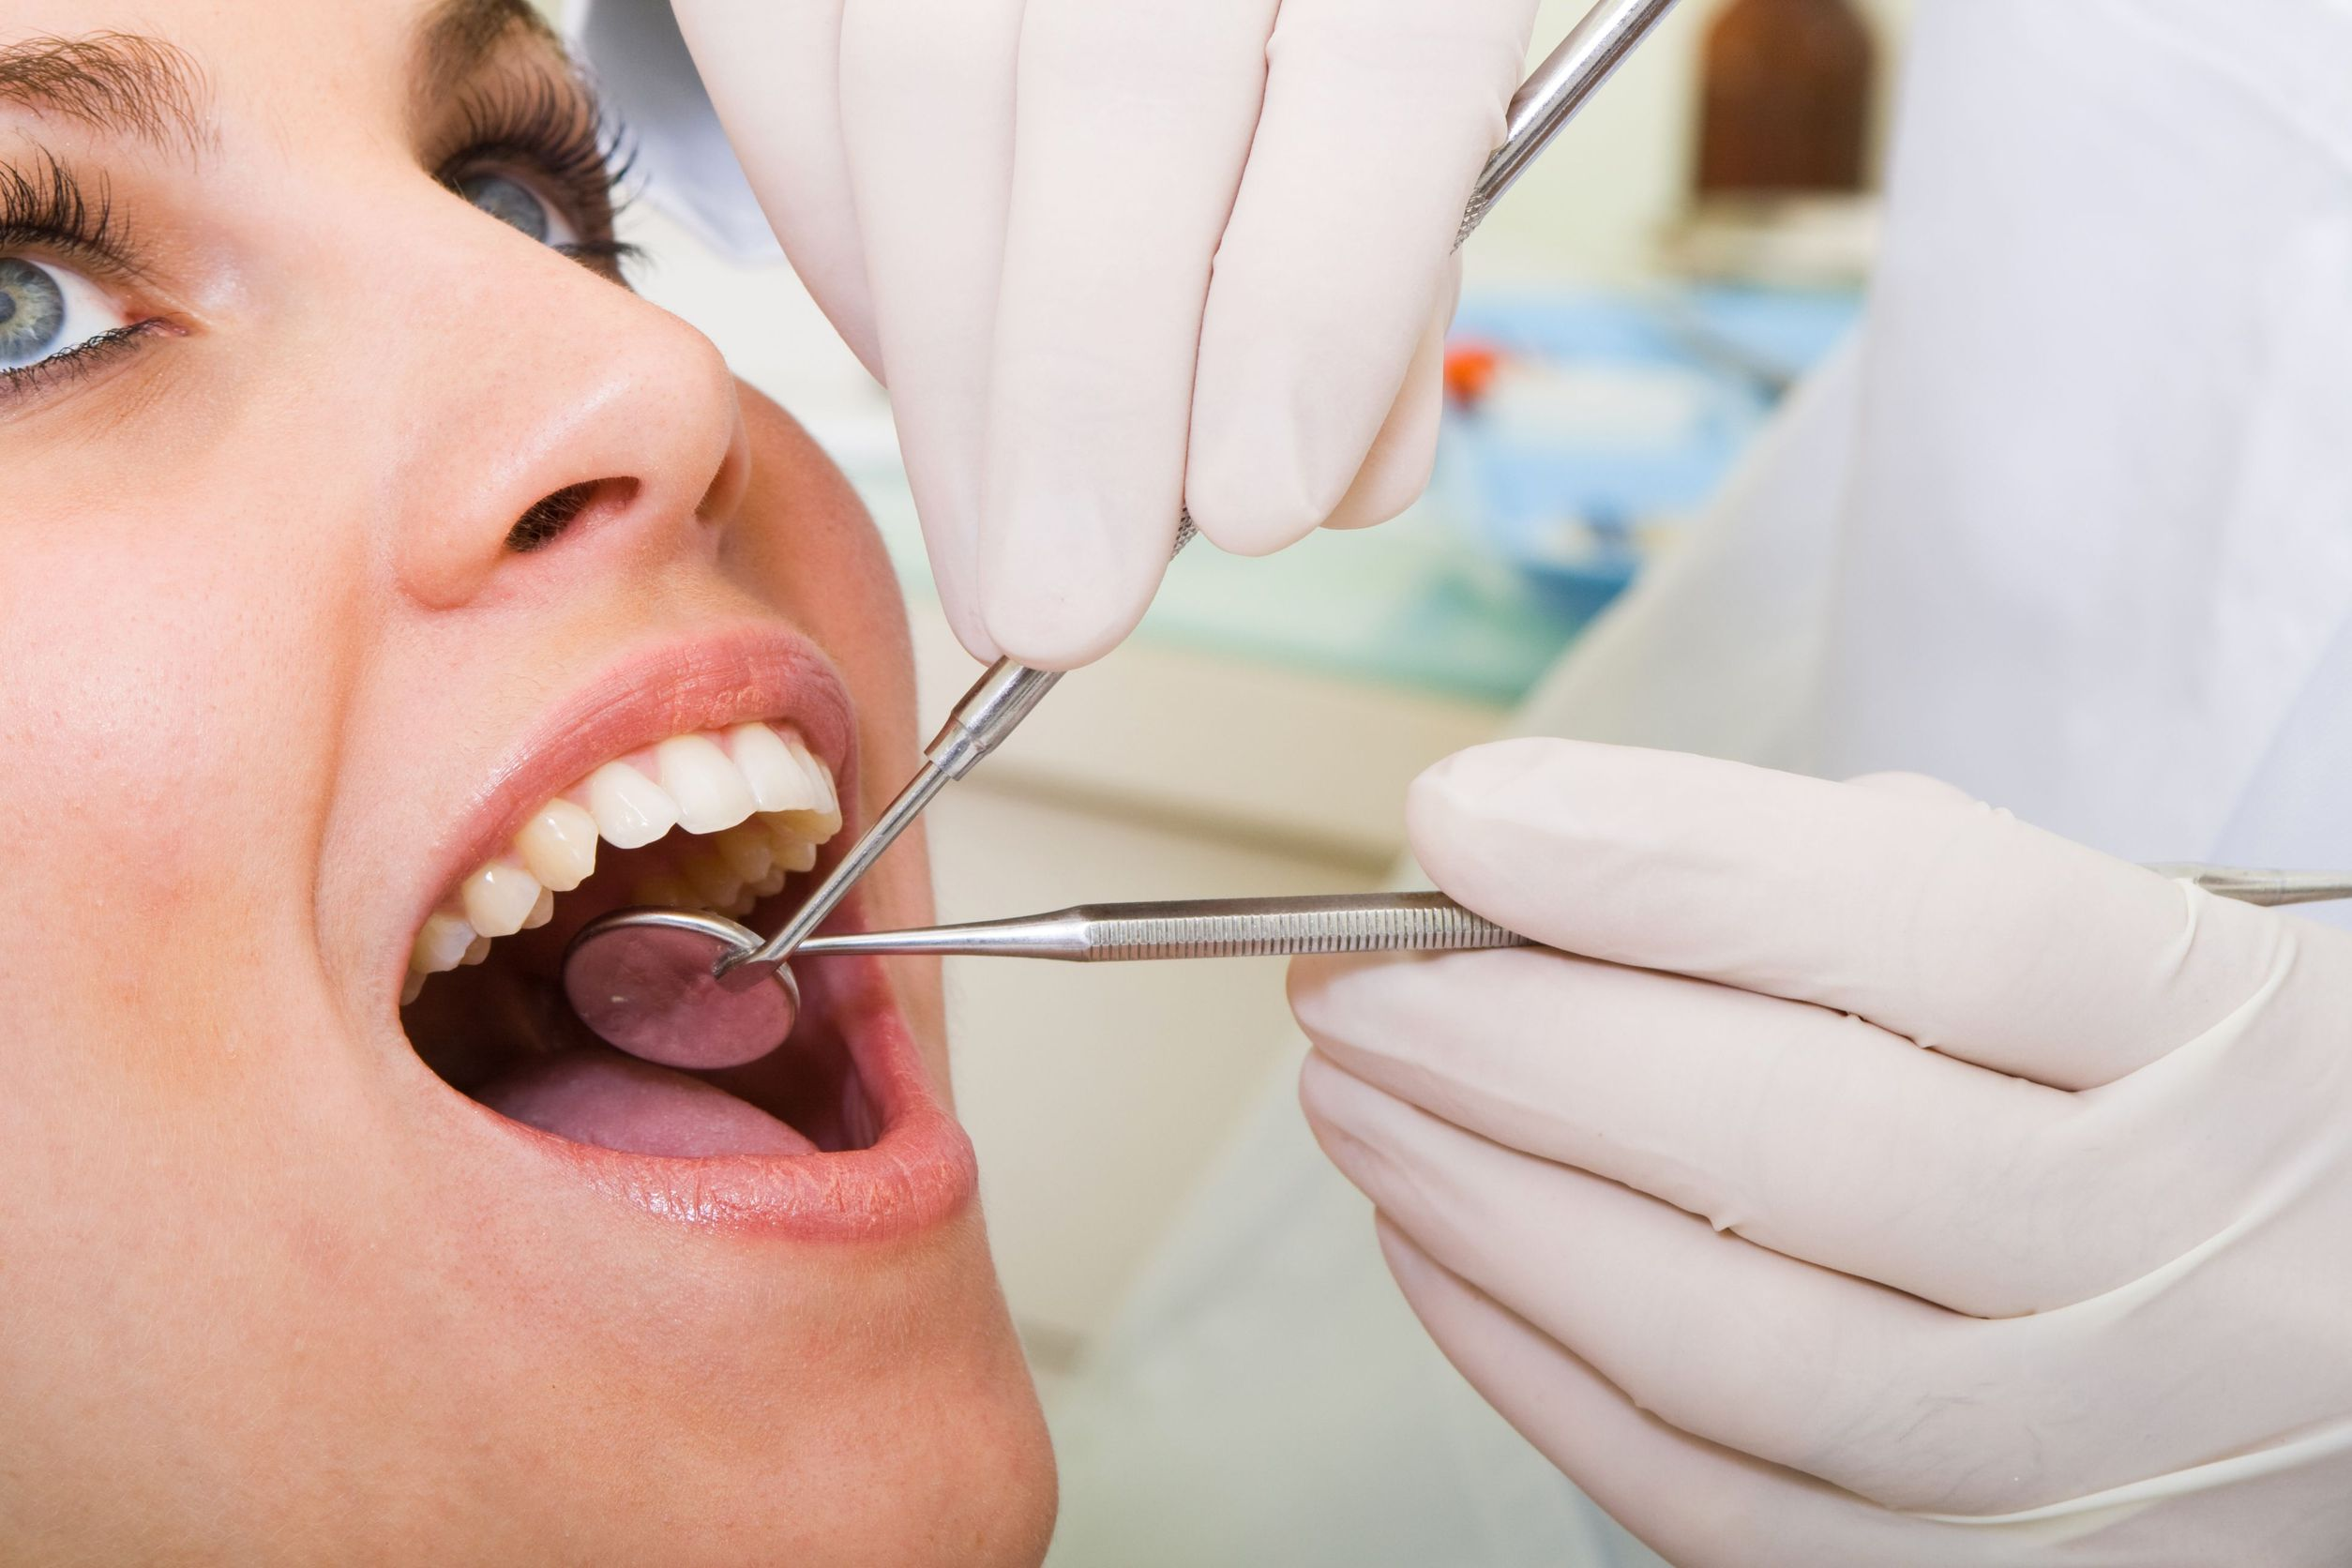 Pain, Pain, Go Away! Pain Relief Options for Dental Procedures